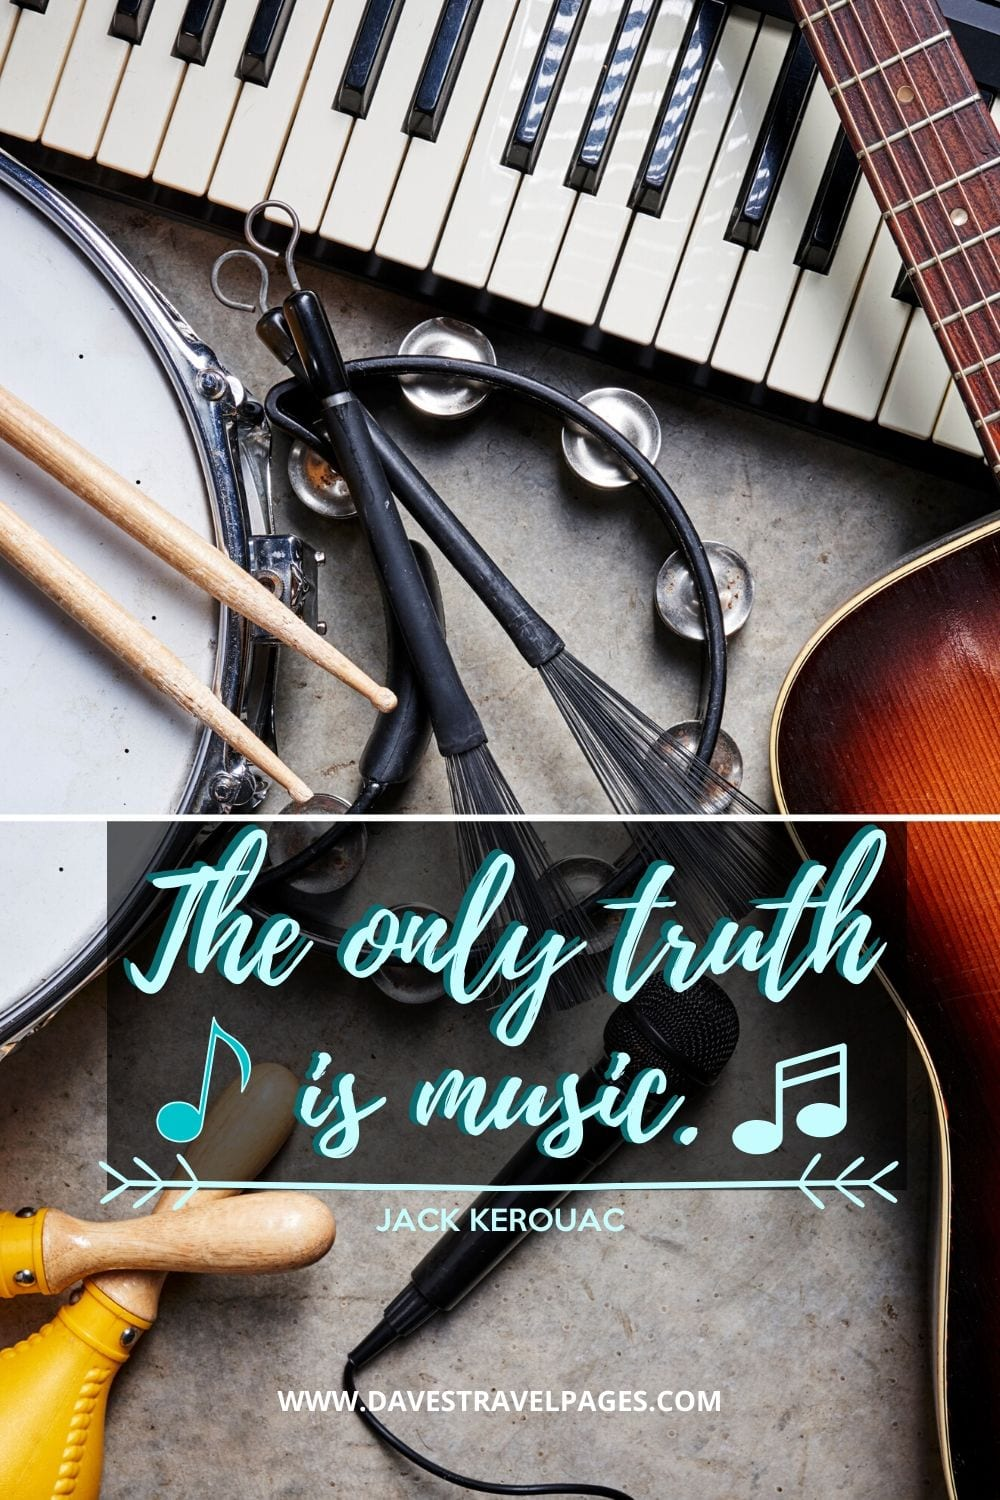 """The only truth is music."" - Jack Kerouac Famous Quote"